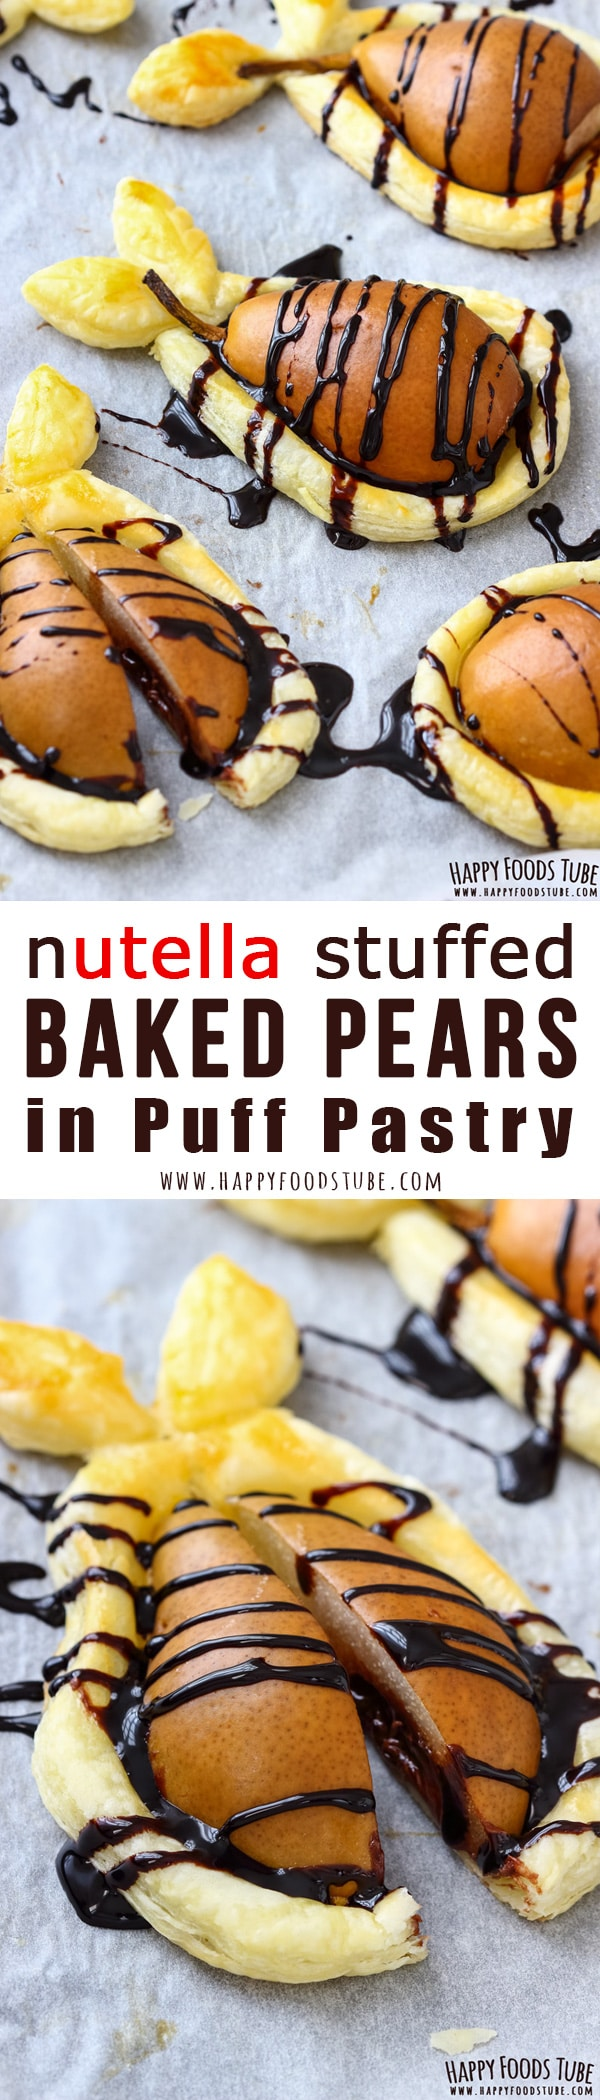 Wow your guests with Nutella stuffed baked pears in puff pastry. This easy fall dessert is ready in less than 30 minutes and requires only 5 ingredients. #dessert #nutella #pears #puffpastry #recipe